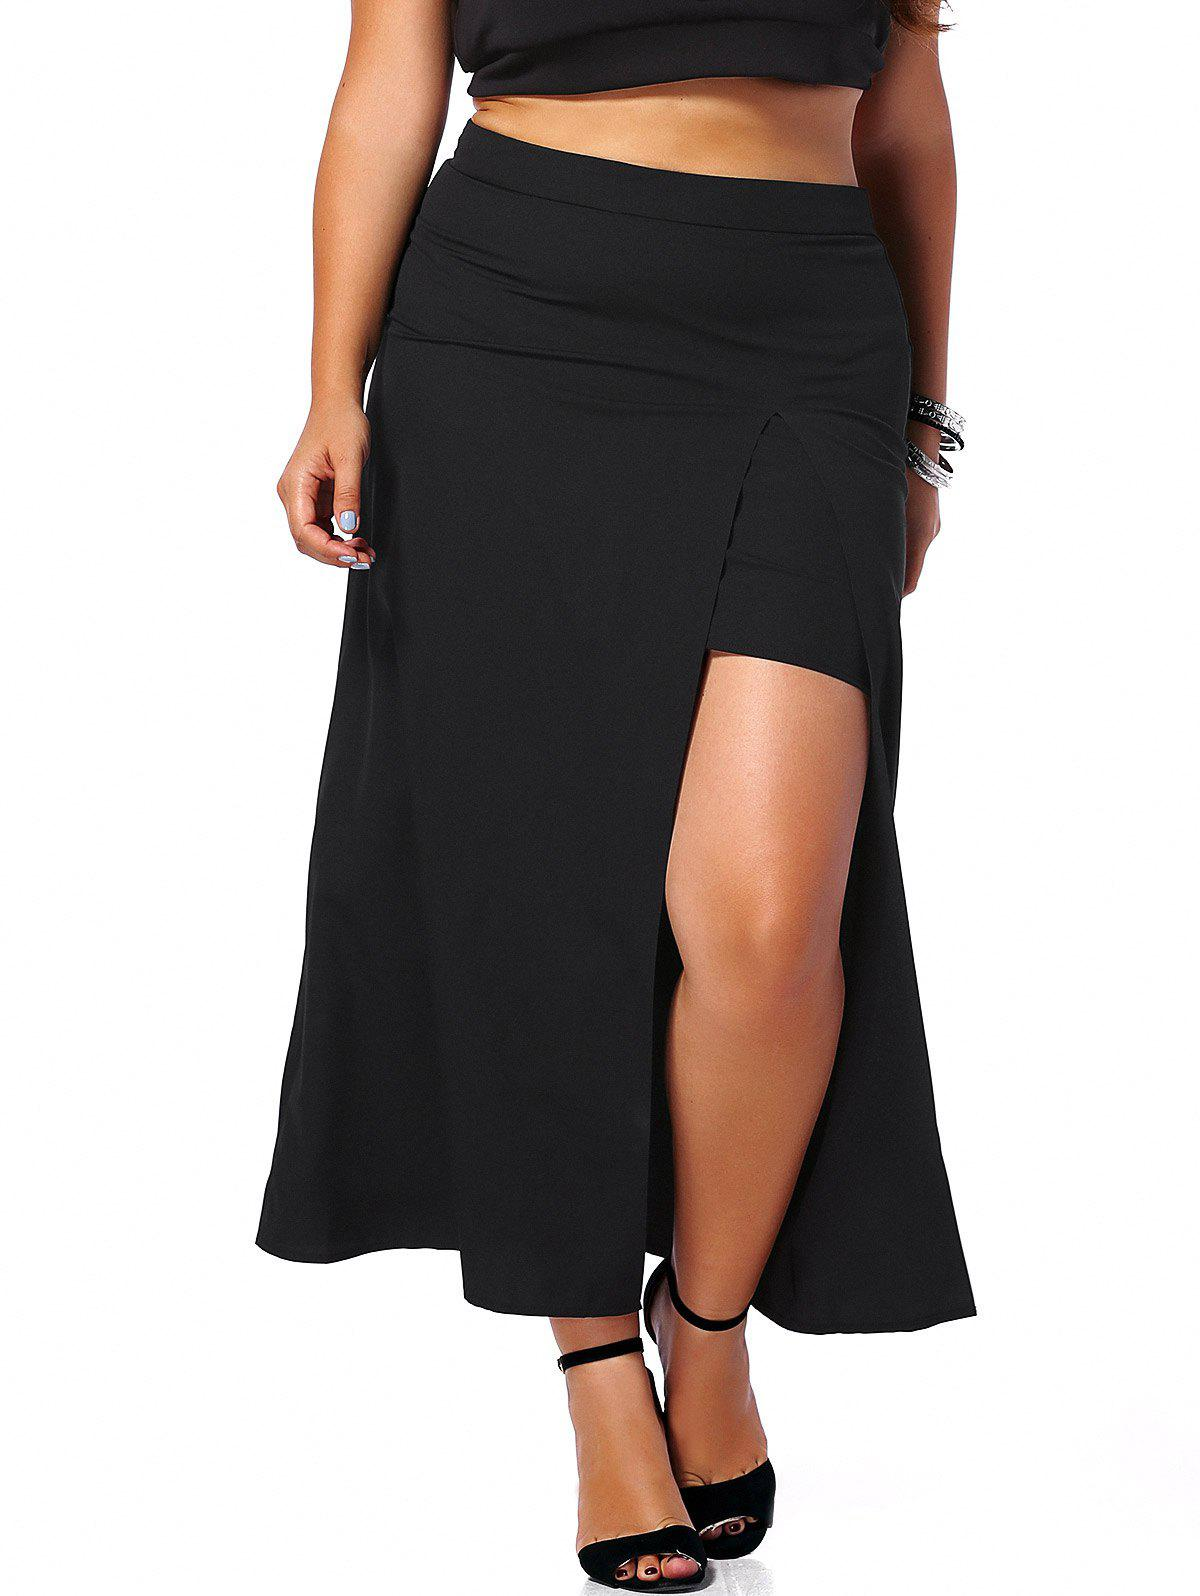 Alluring Plus Size High Slit Black Women's Maxi Skirt - BLACK 5XL